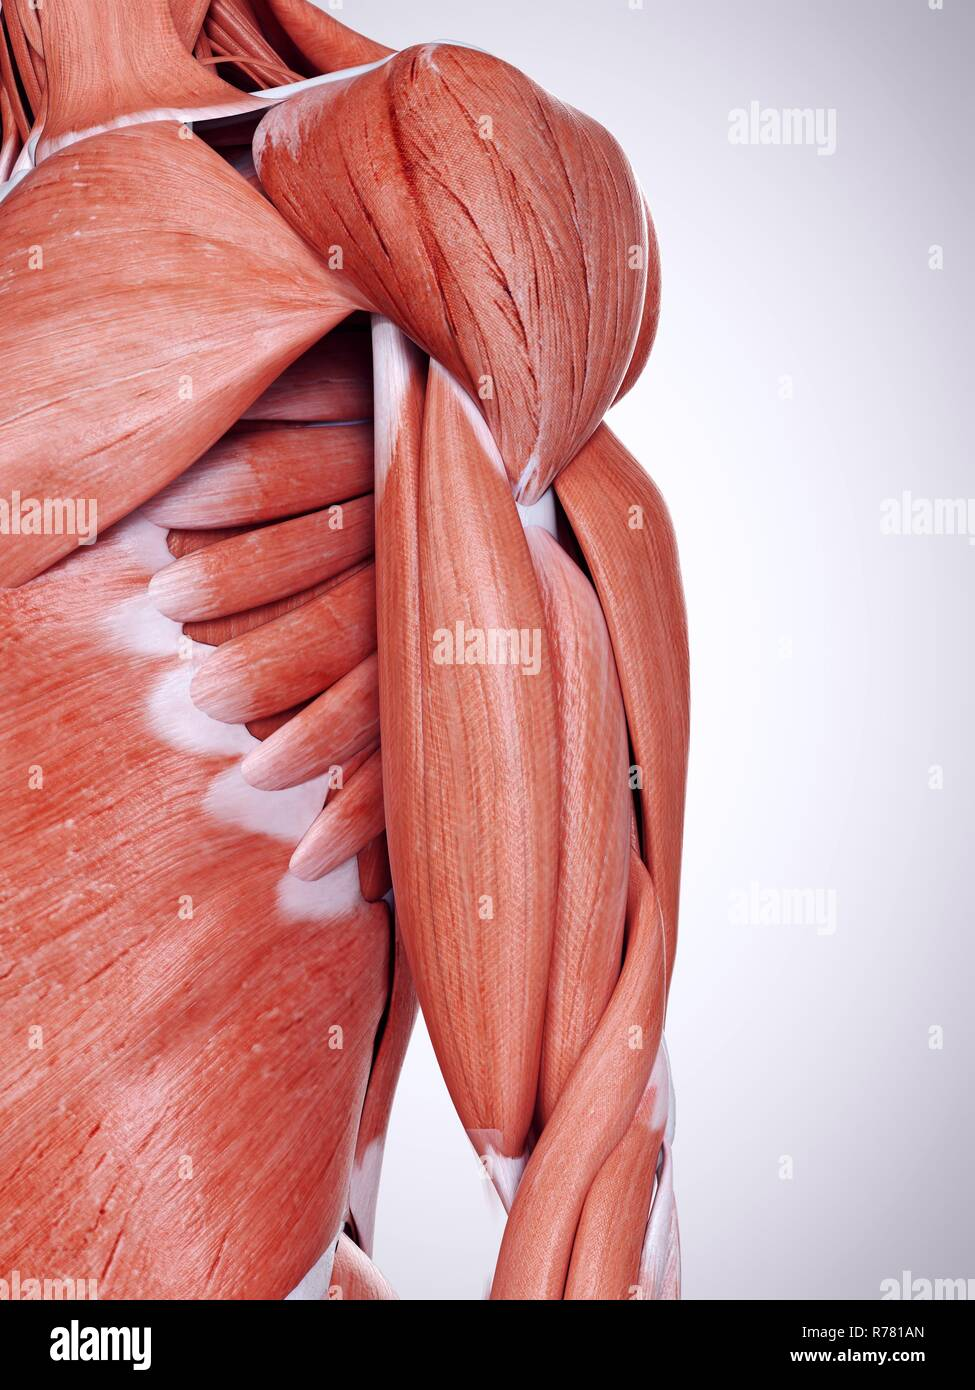 3d Rendered Illustration Of The Upper Arm Muscles Stock Photo